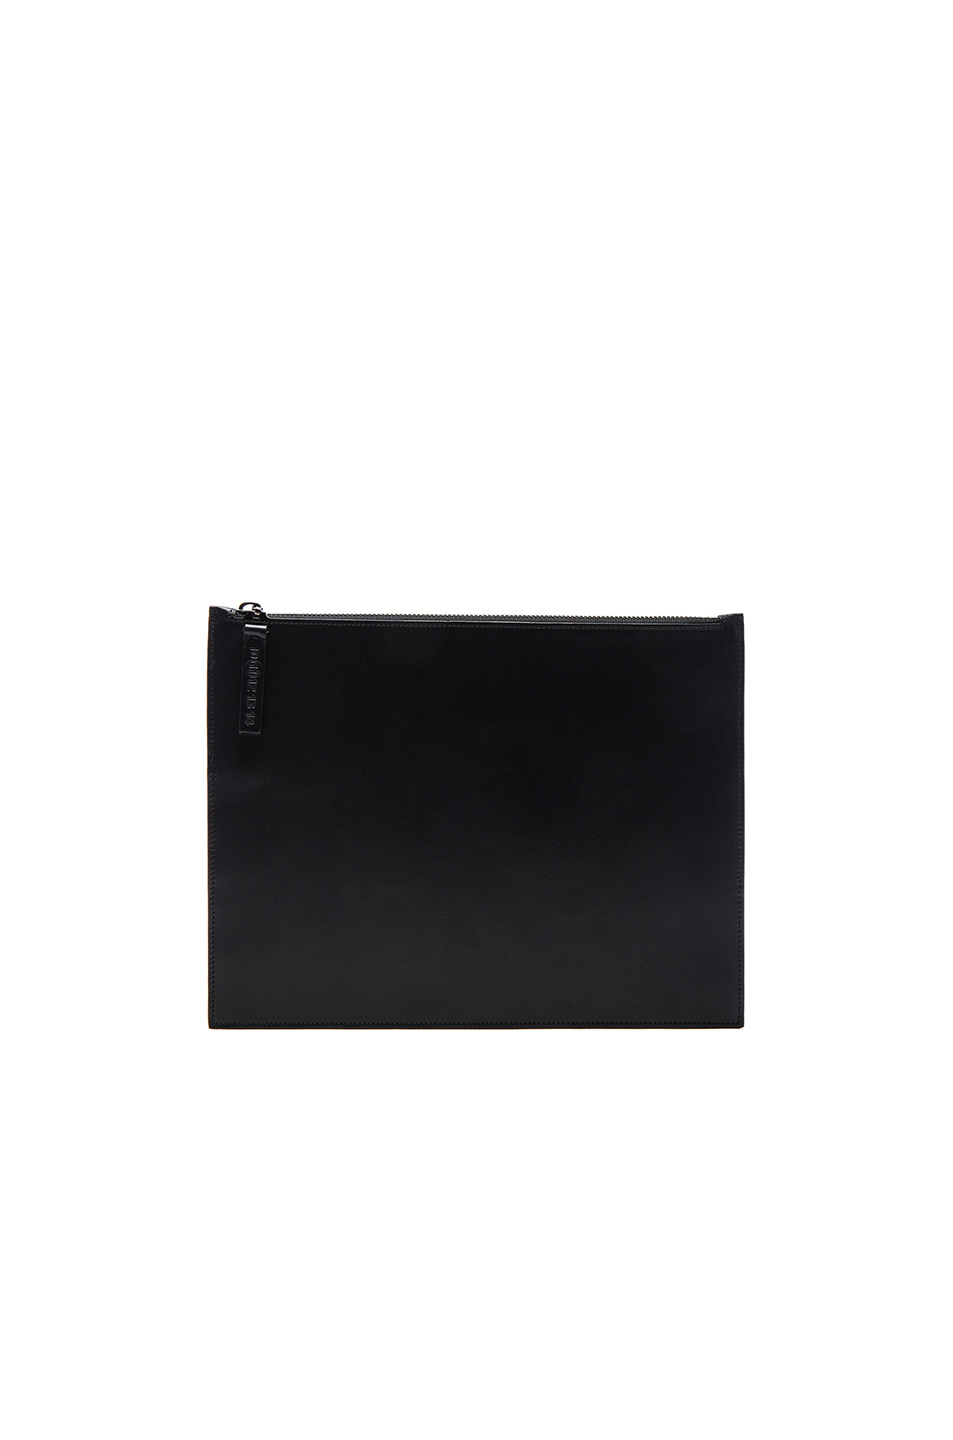 Maison Margiela Calf Leather Pouch in Black